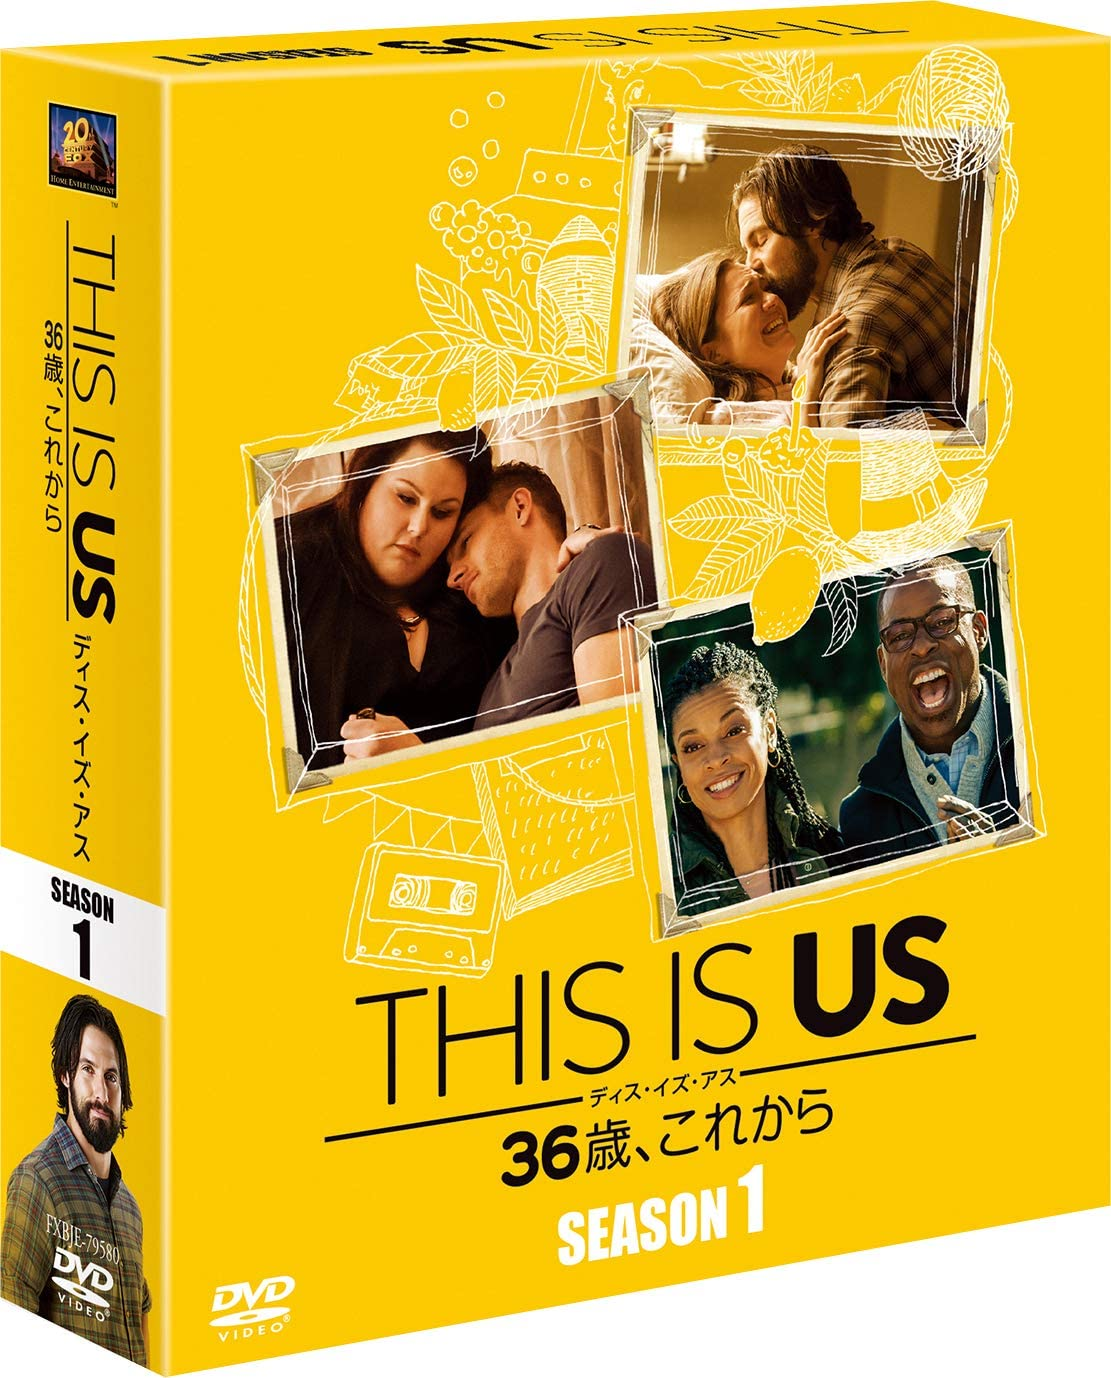 THIS IS US 36歳、これから 1stシーズン